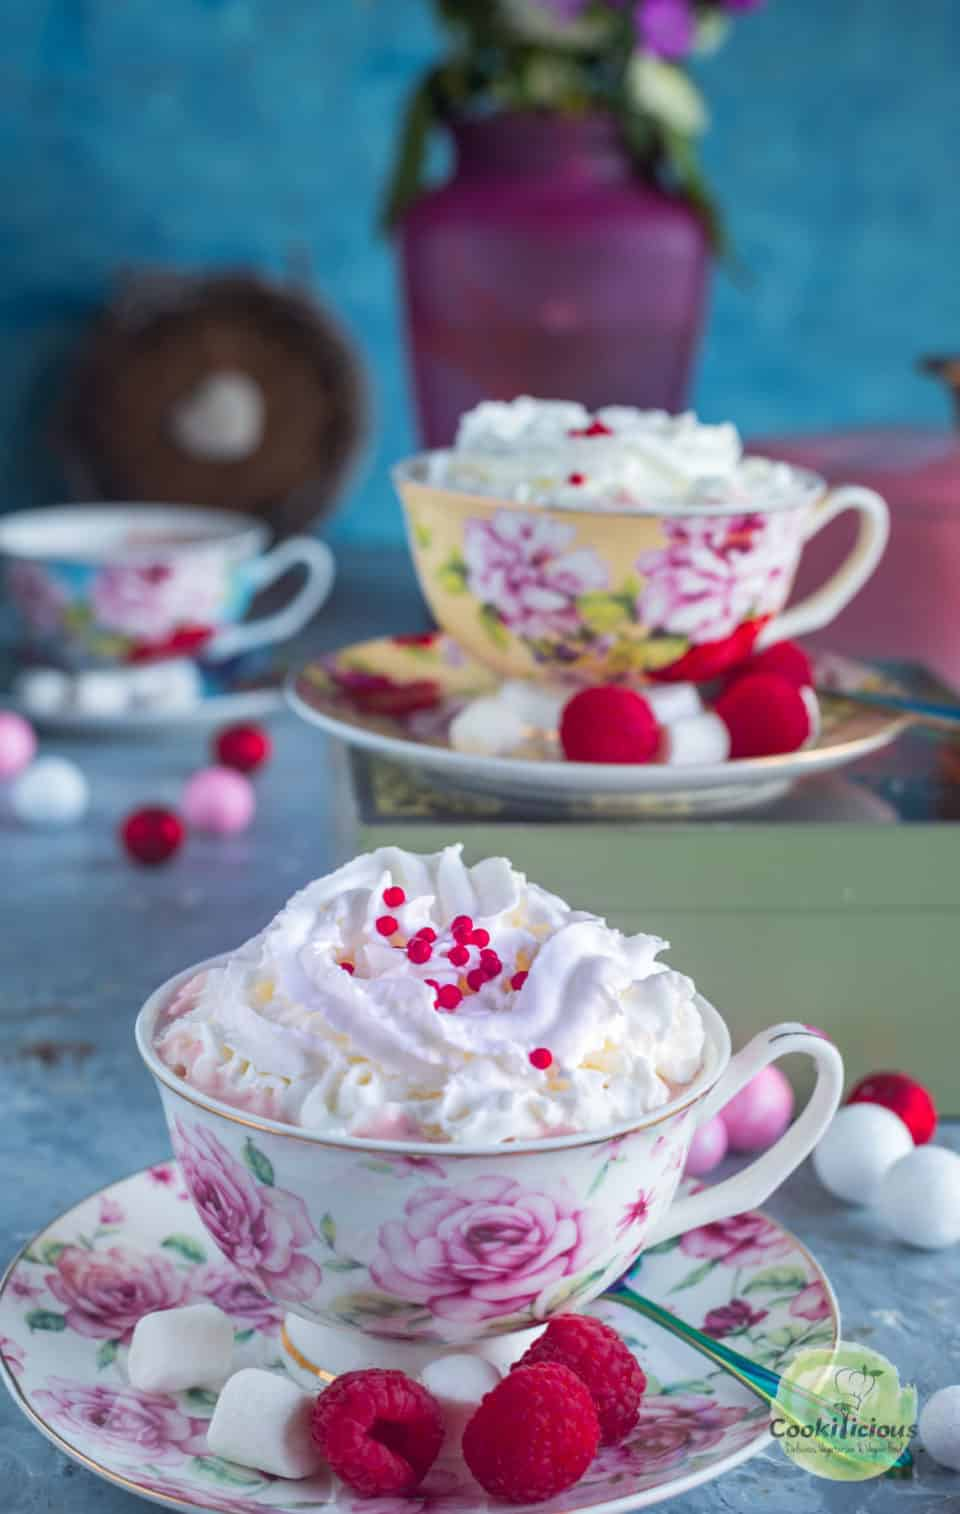 Vegan Raspberry Rose Hot Chocolate served in teacups with whipped cream on top